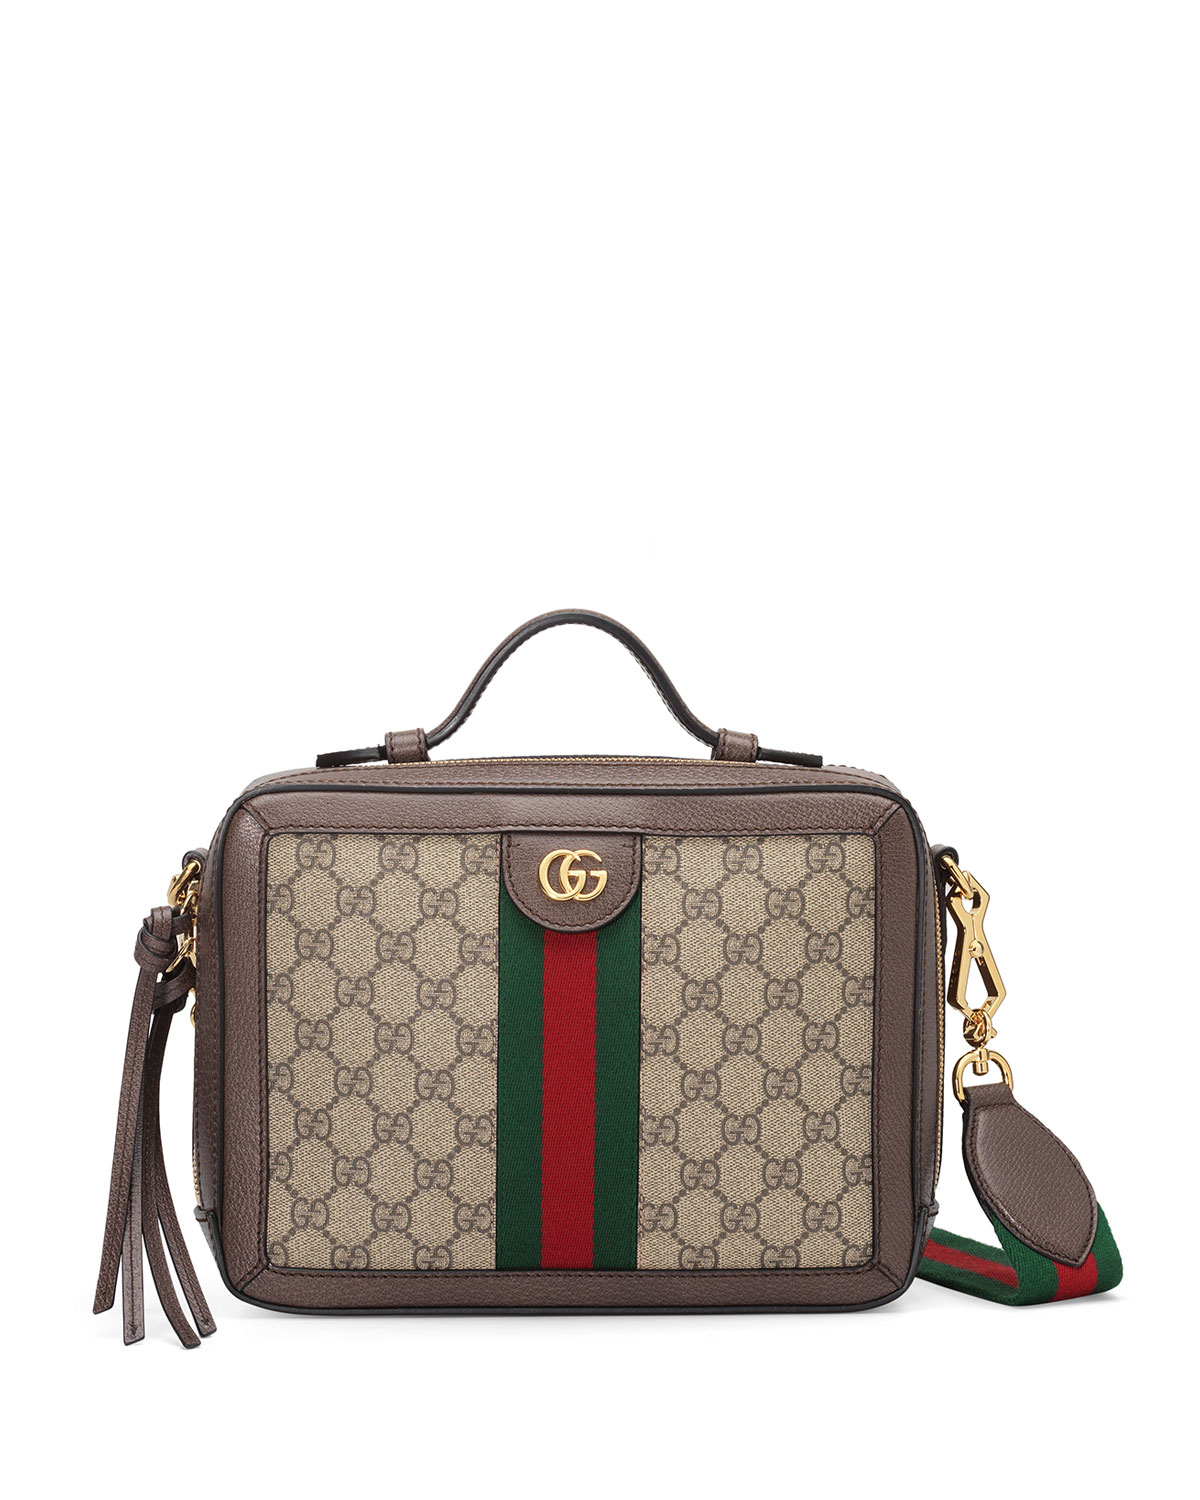 e01233d2d6f Gucci Small Ophidia Gg Supreme Canvas Shoulder Bag - Beige In 8745 Gg Beige